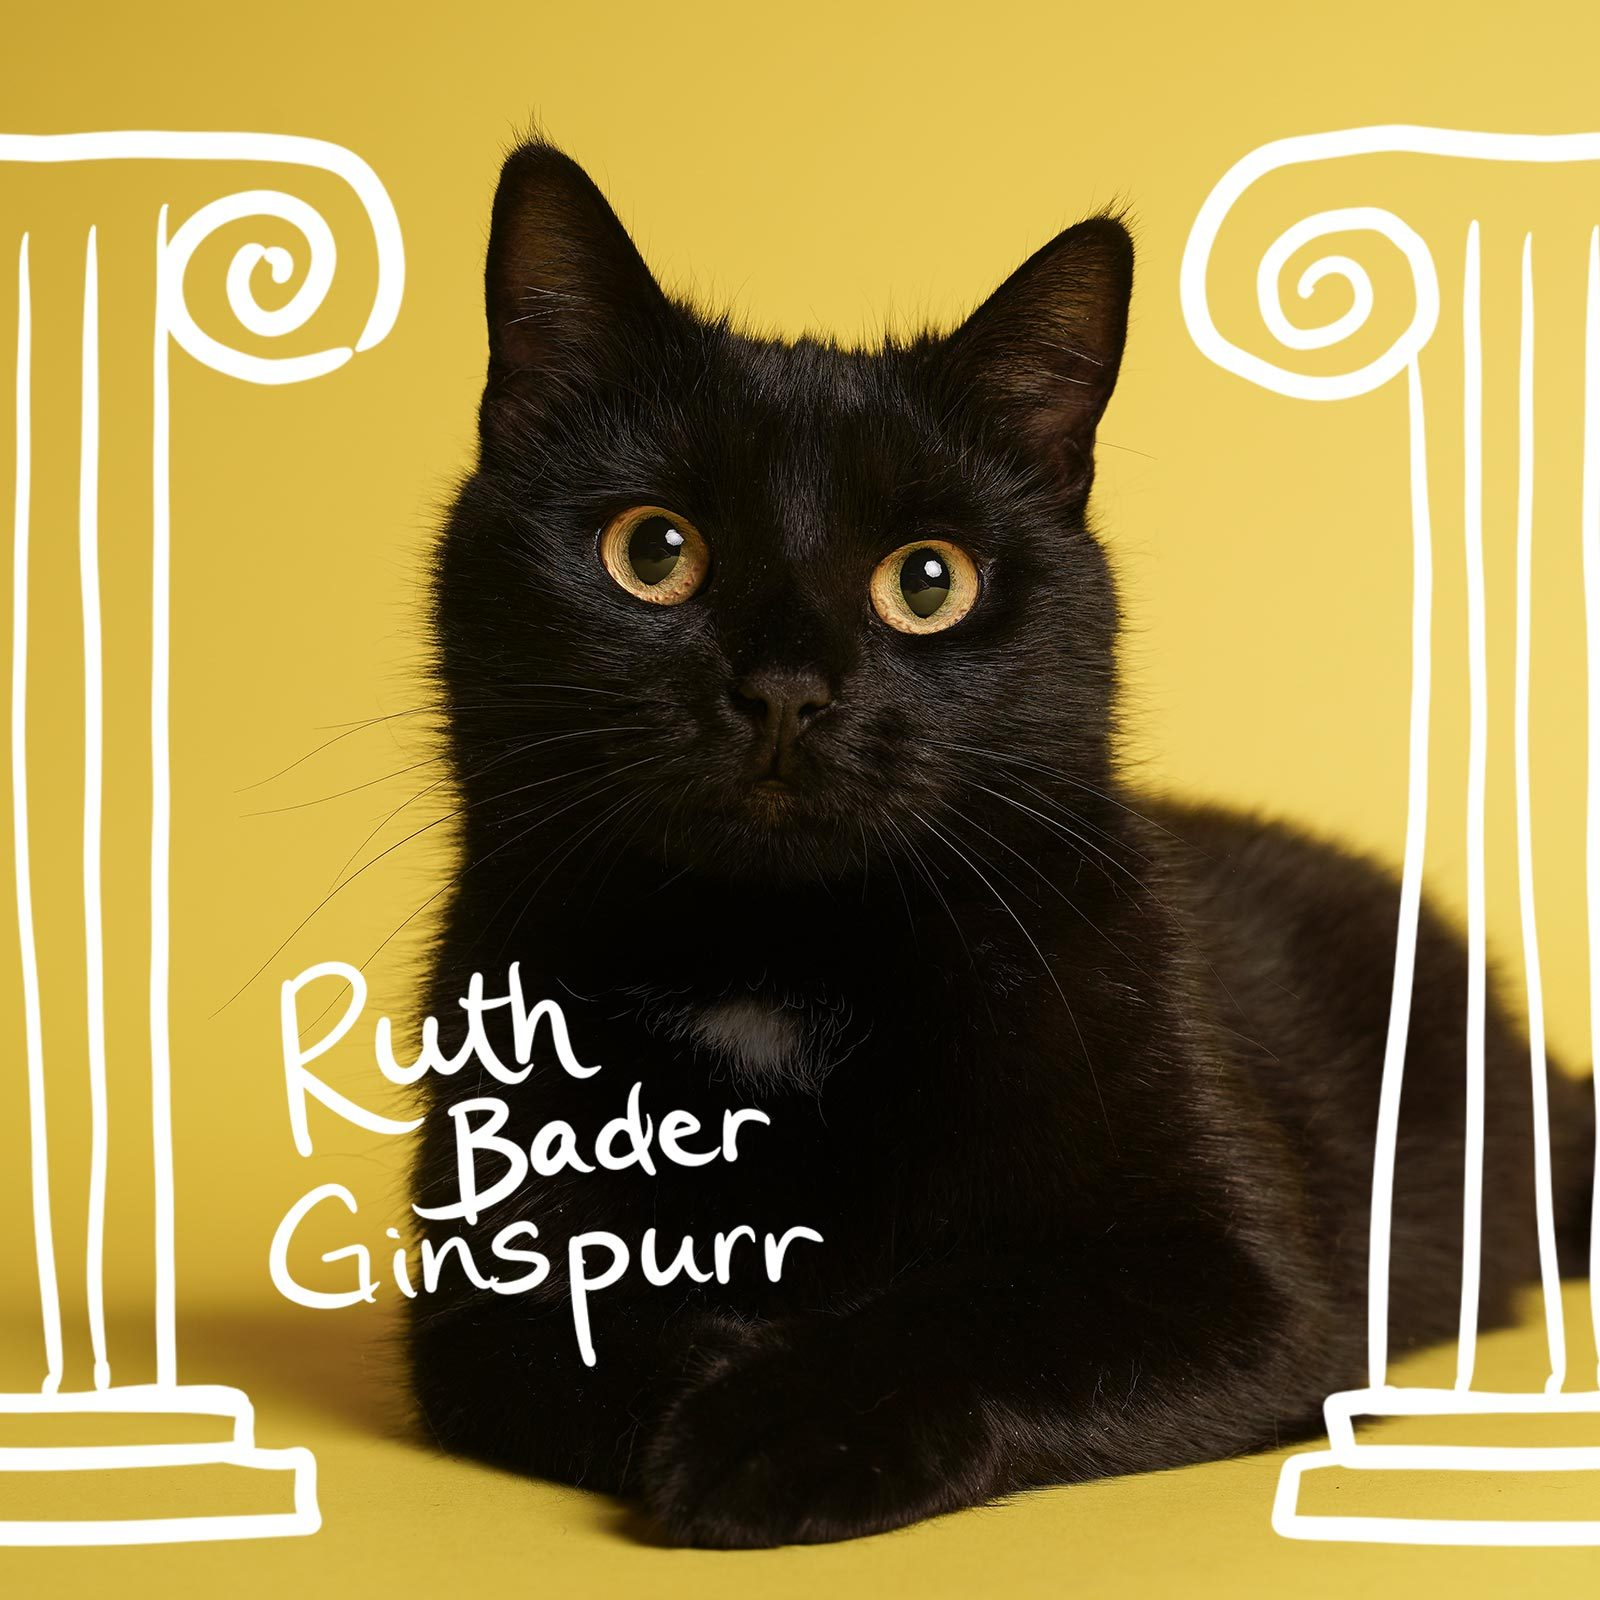 Cat between two roman columns named Ruth Bader Ginspurr